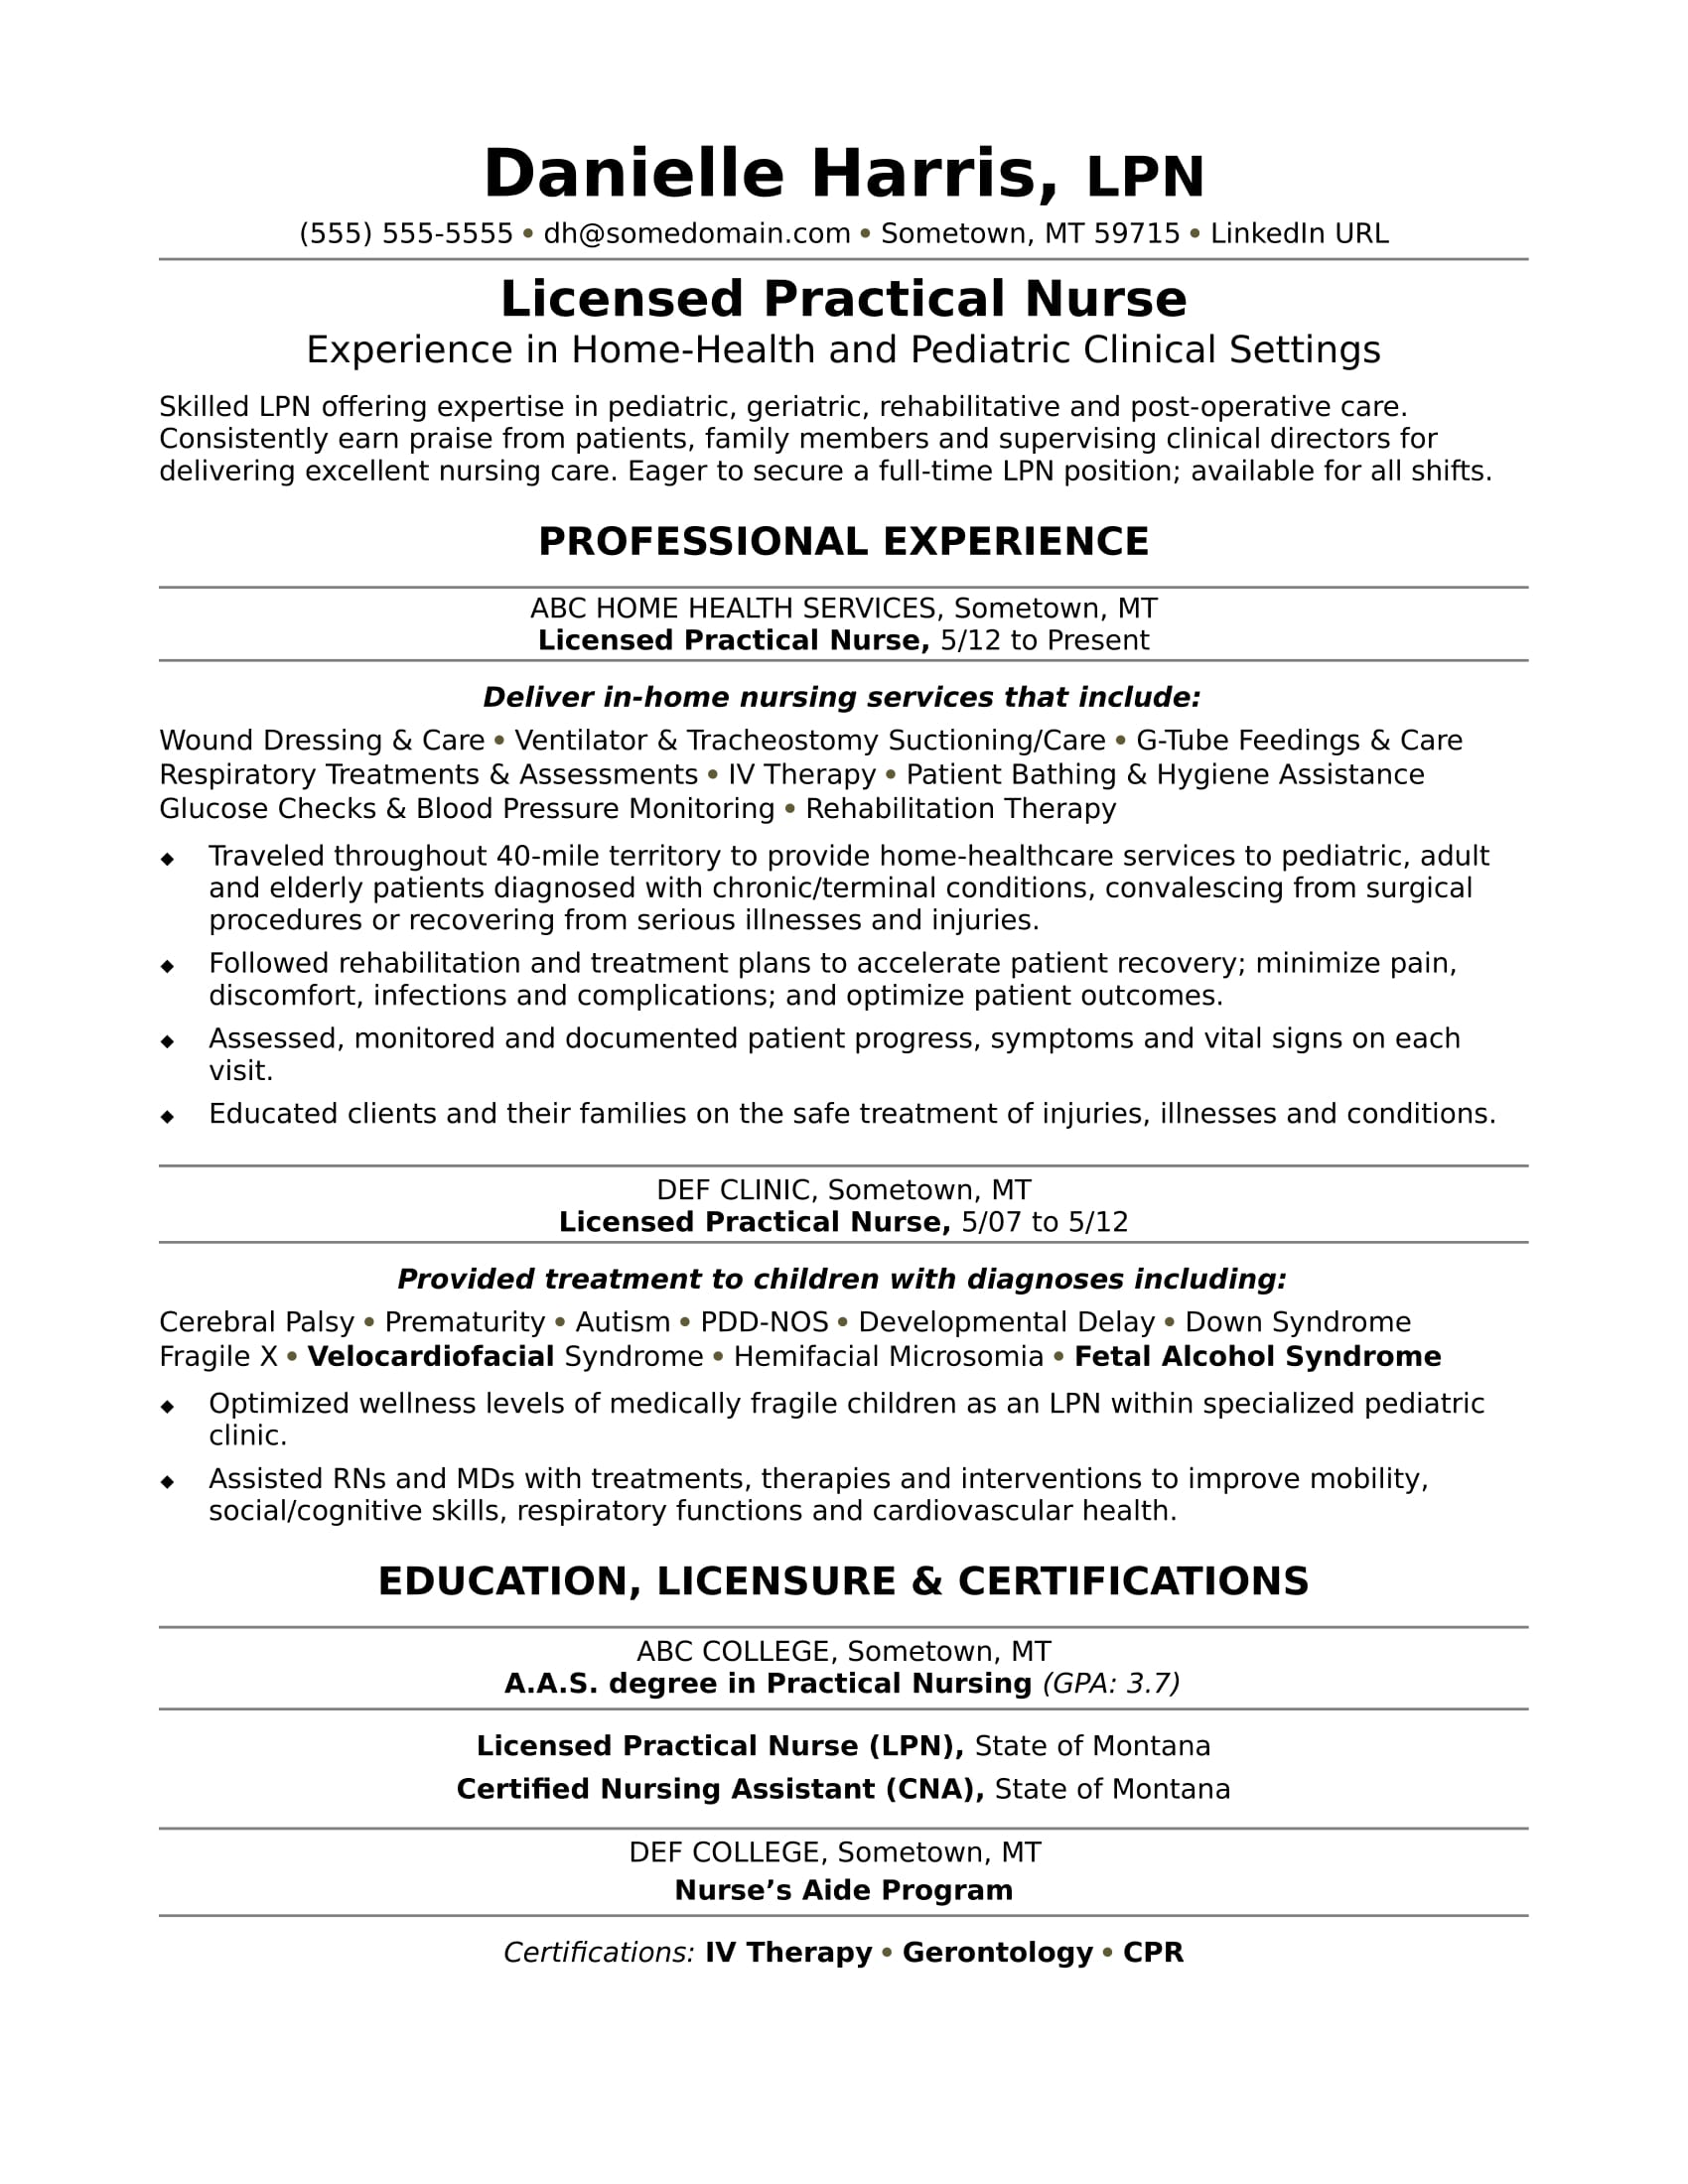 licensed practical nurse resume sample monster home health aide business intelligence Resume Home Health Aide Resume